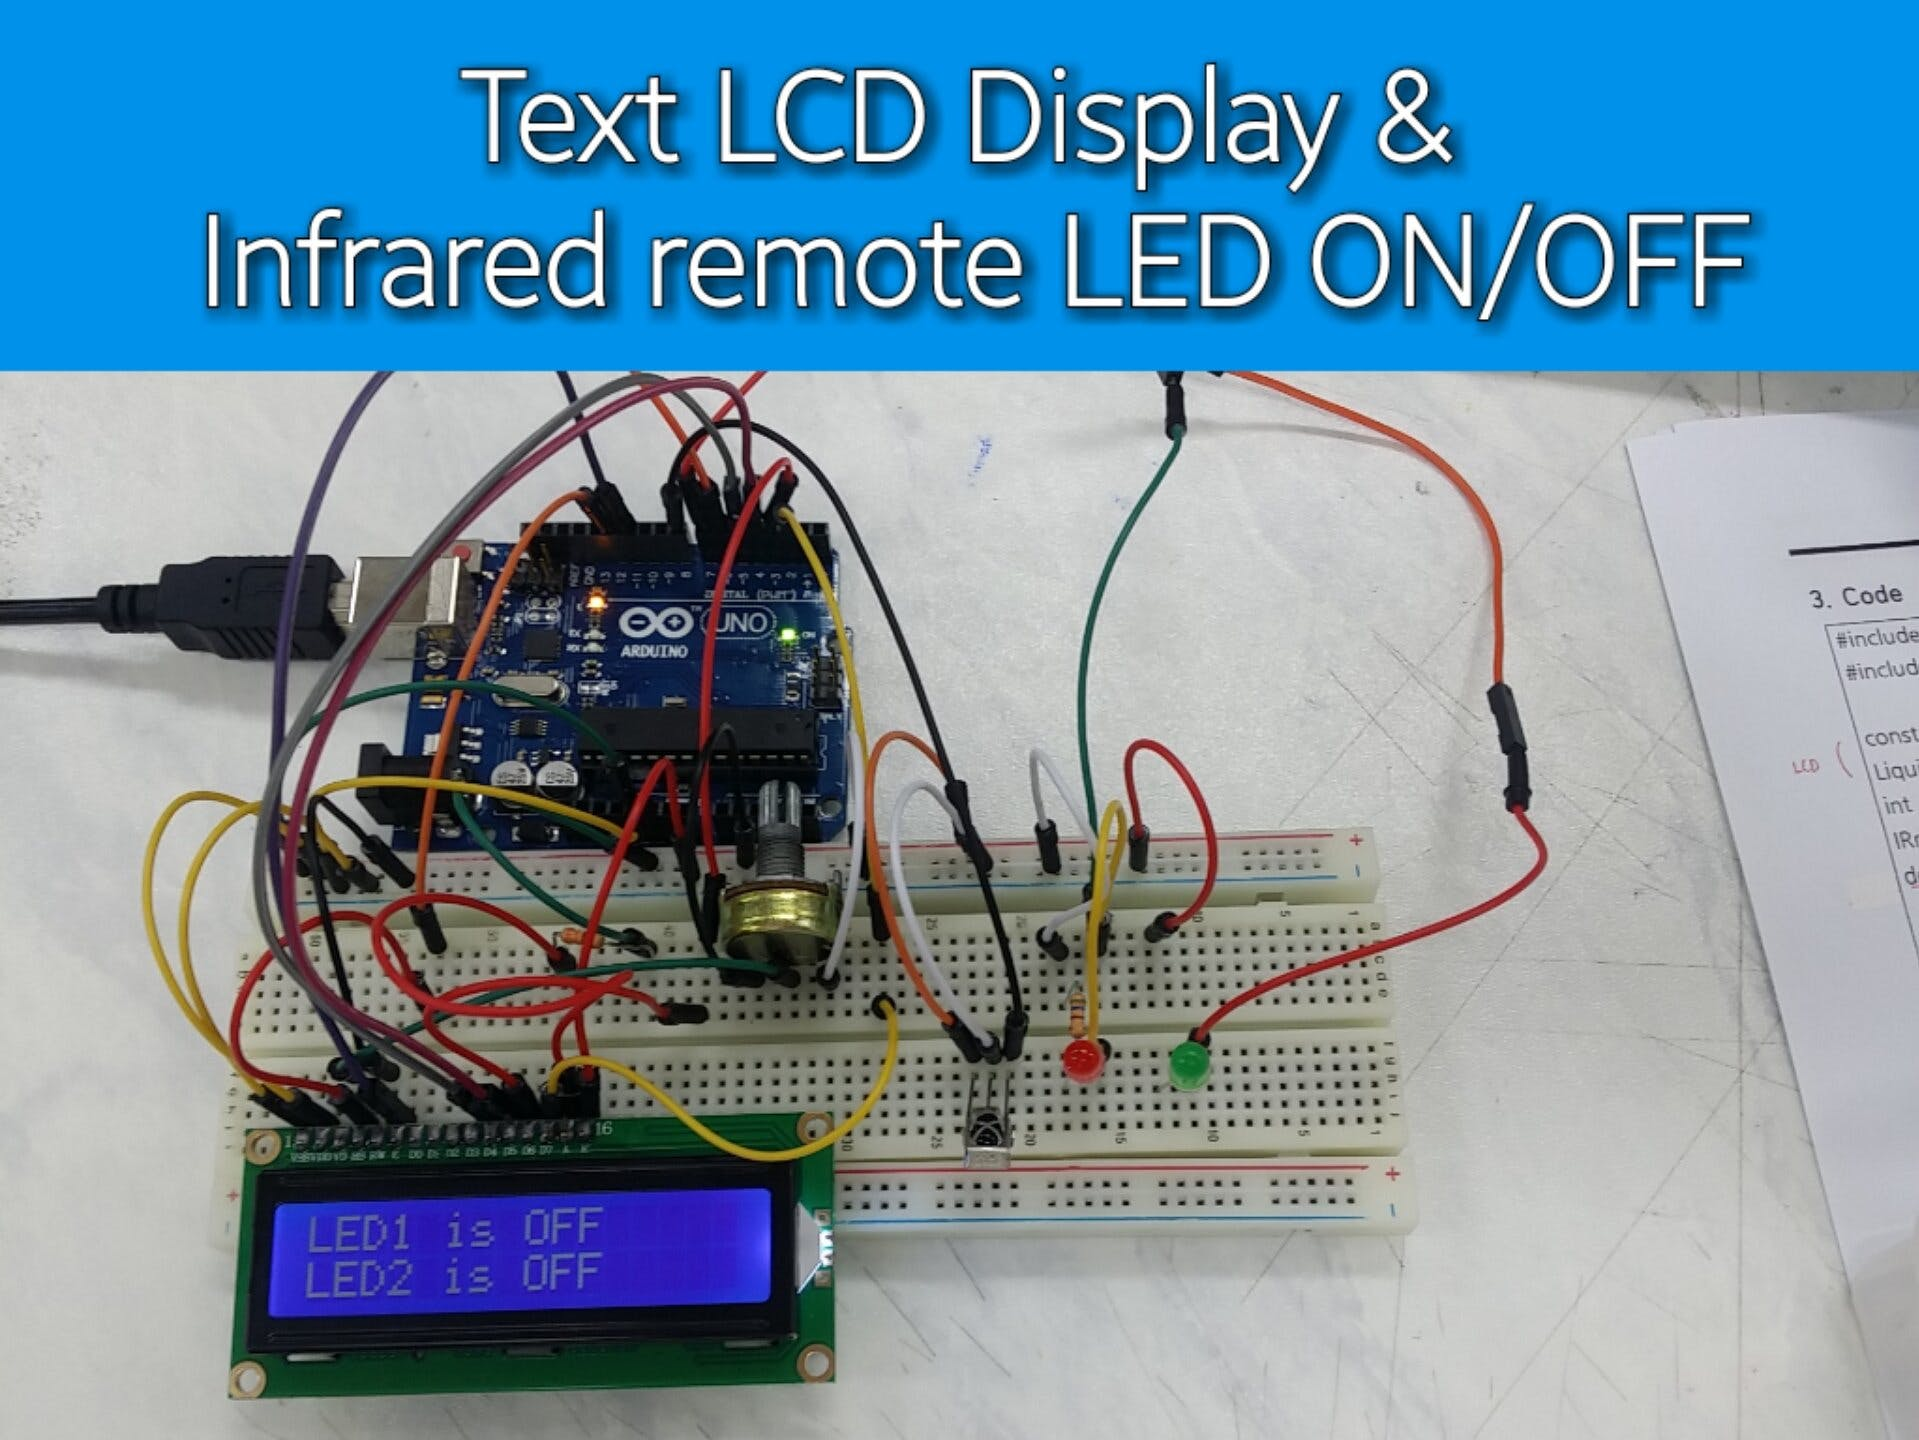 Text LCD Display & infrared remote LED ON/OFF